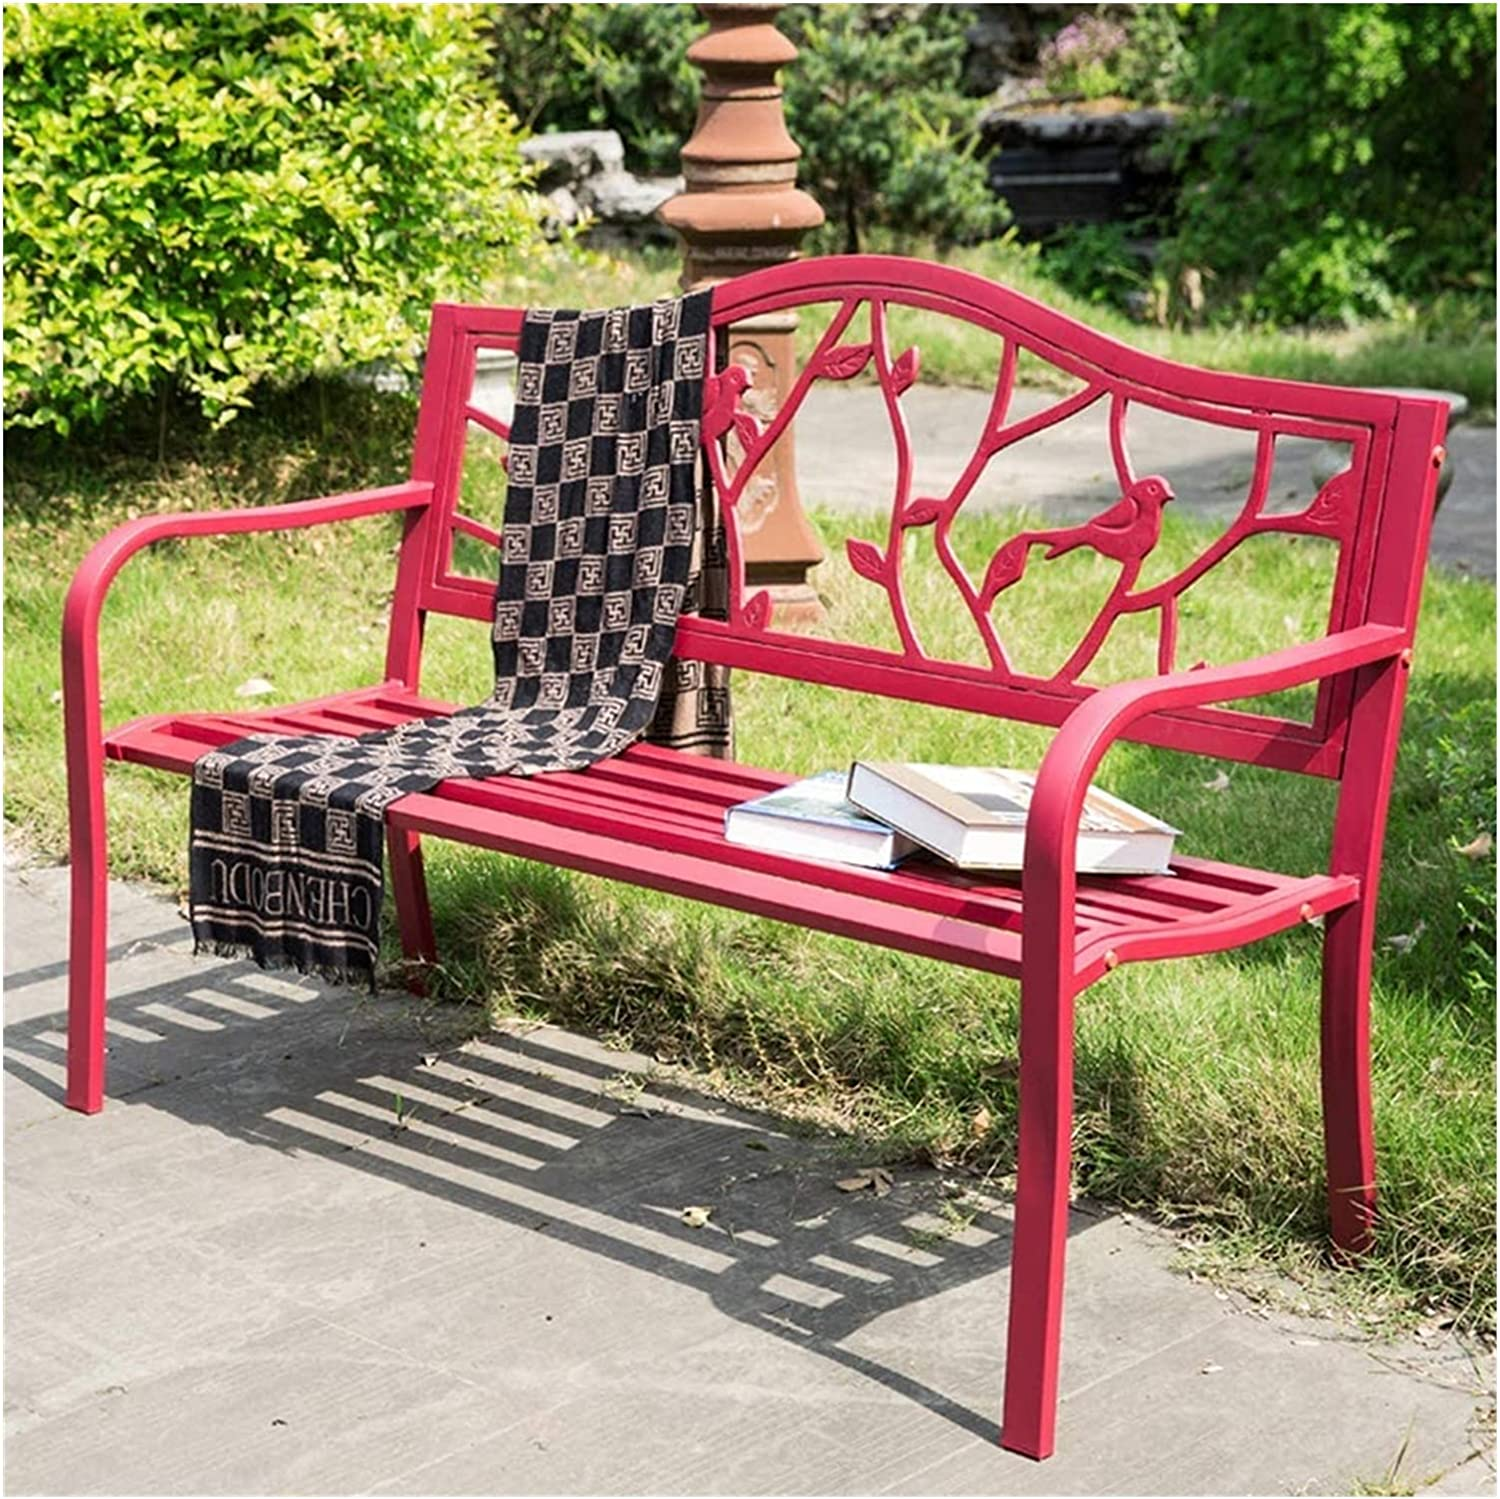 Garden Bench Ranking TOP15 Outdoor Benches Terrace Sale Special Price Park 50-inch